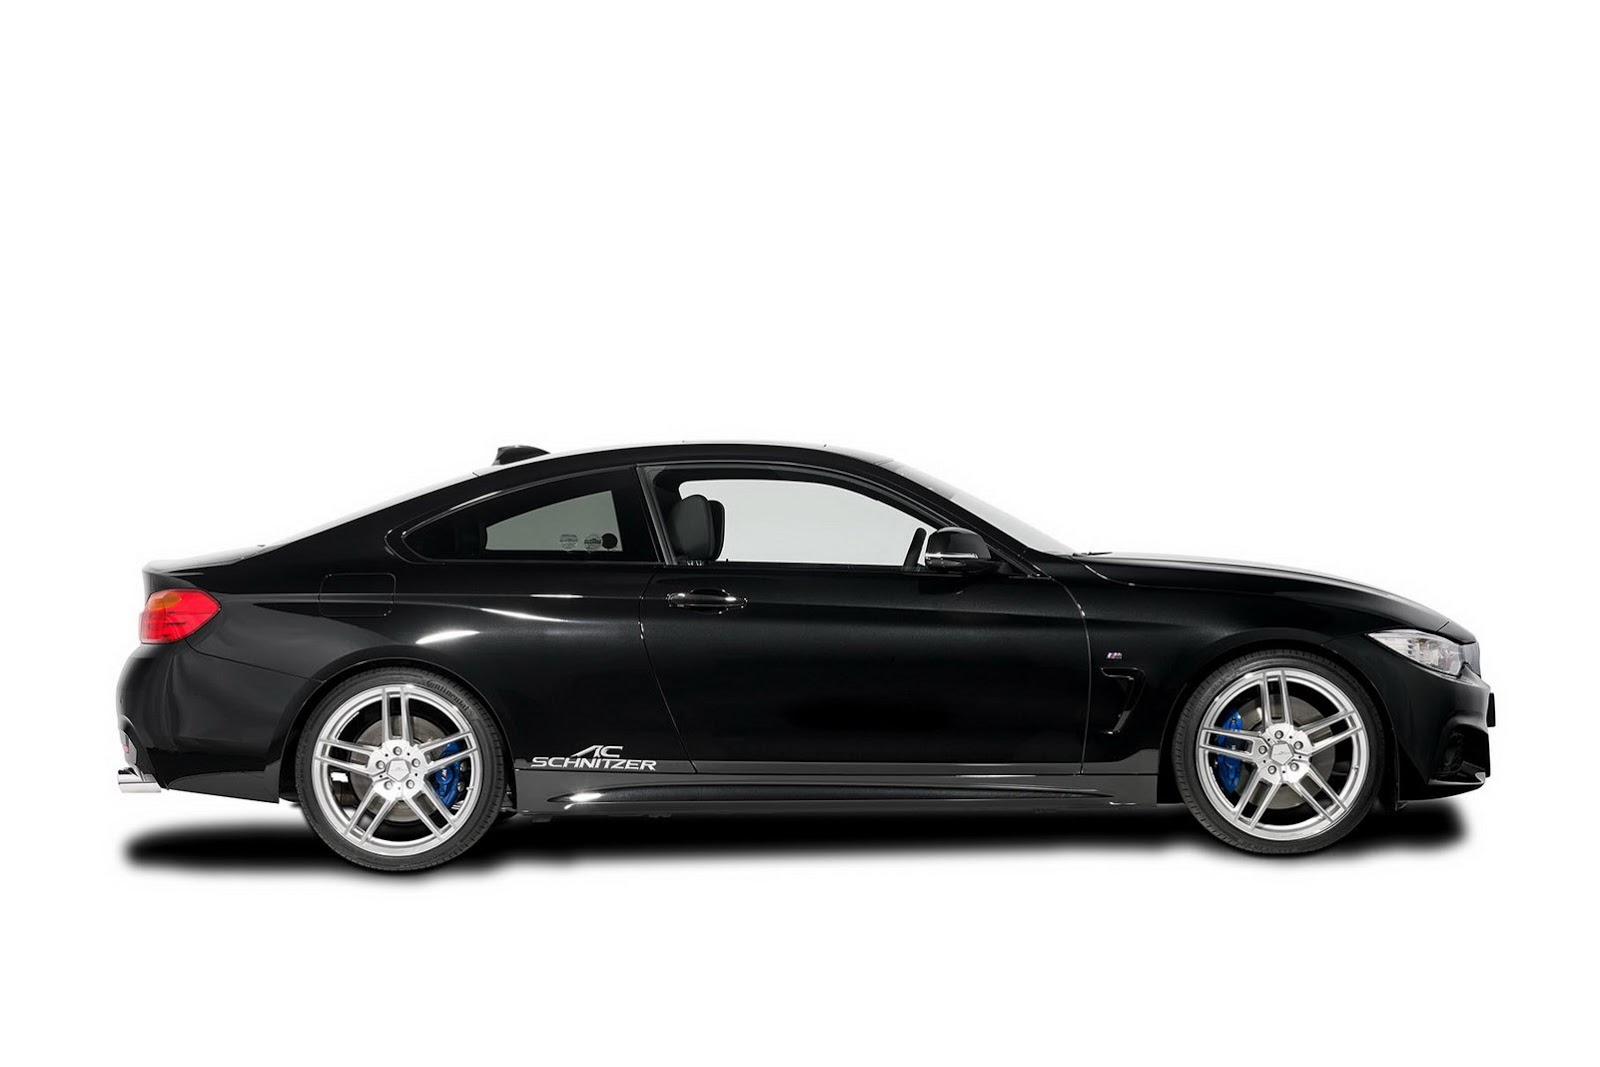 ac-schnitzer-4-series-coupe-152